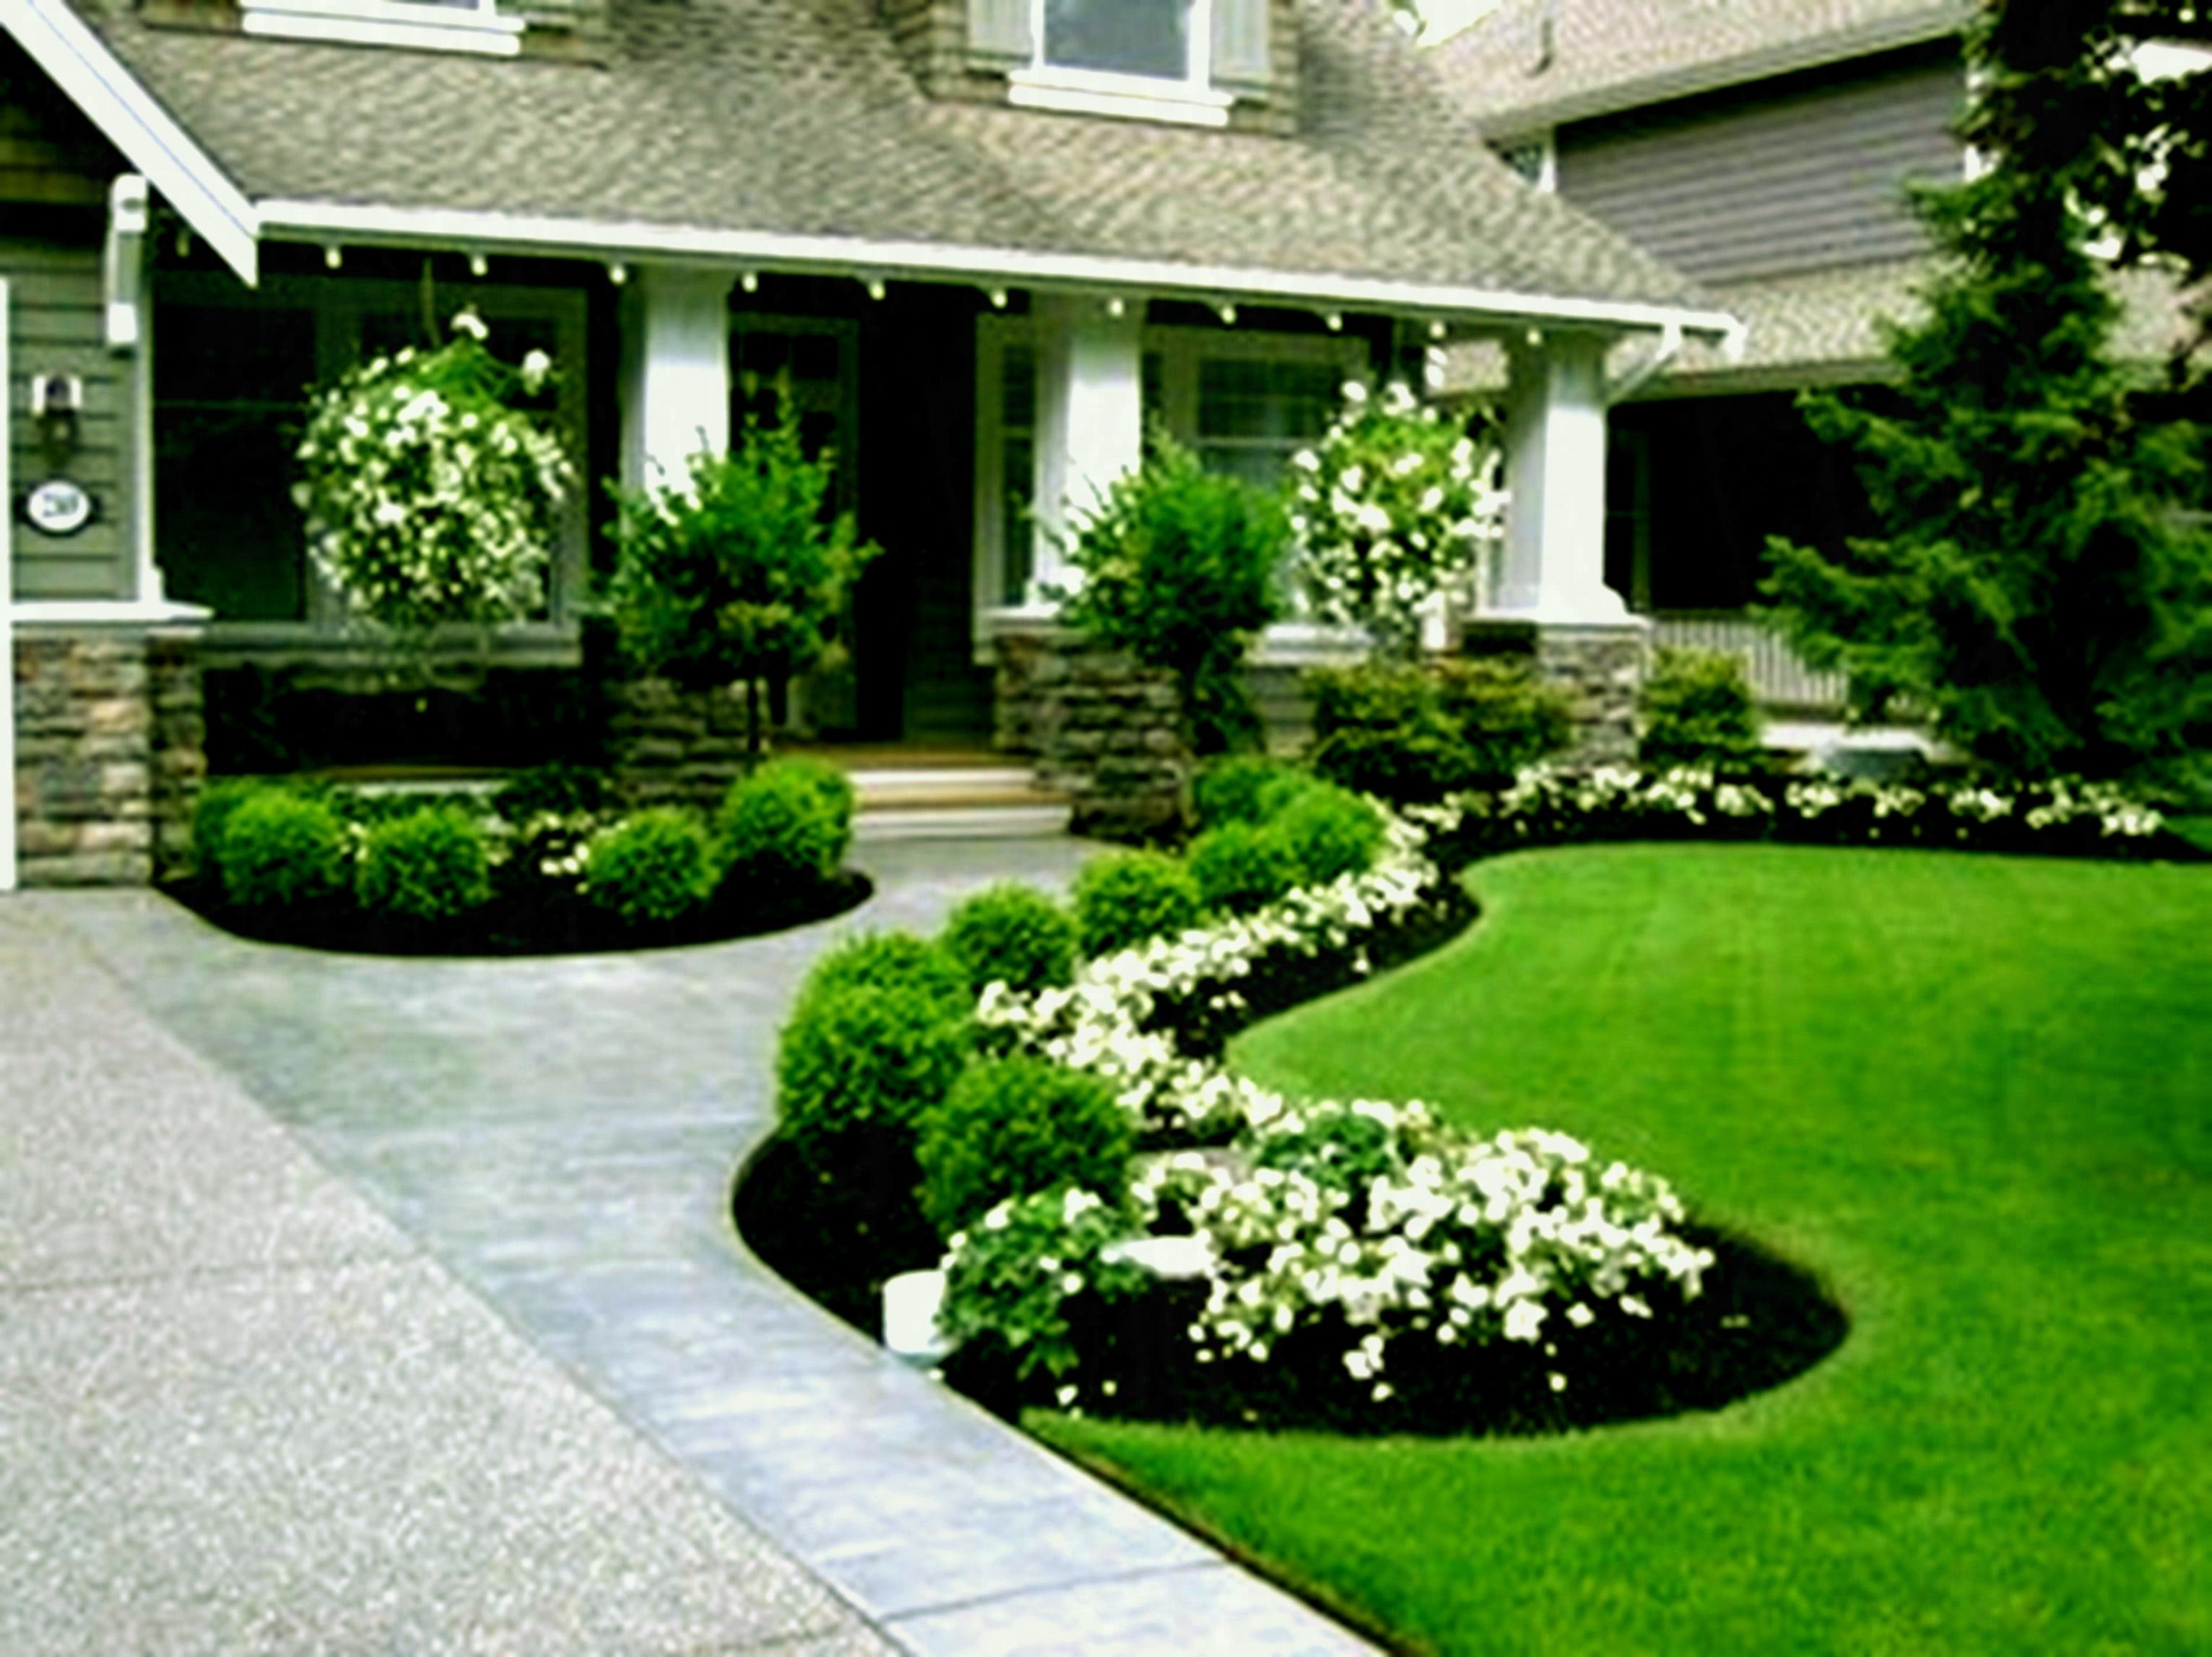 Low Maintenance Landscaping Ideas For Small Yards ... on Small Yard Landscaping Ideas id=46461